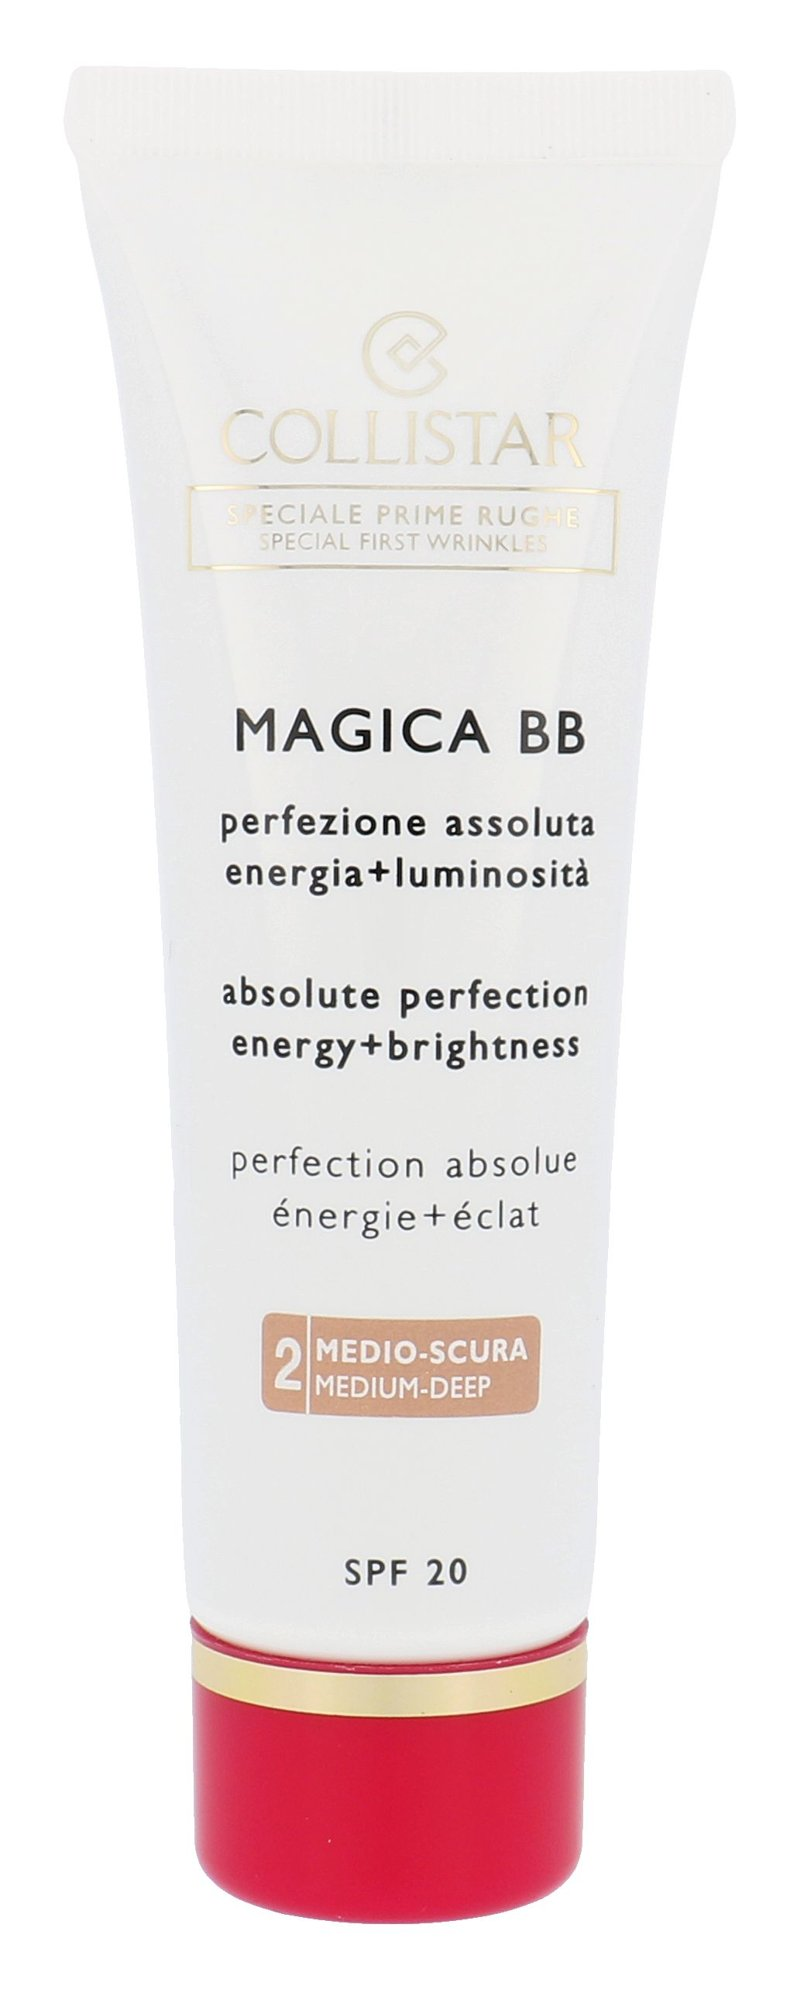 Collistar Magica BB Absolute Perfection Cream Cosmetic 50ml 2 Medium-Deep